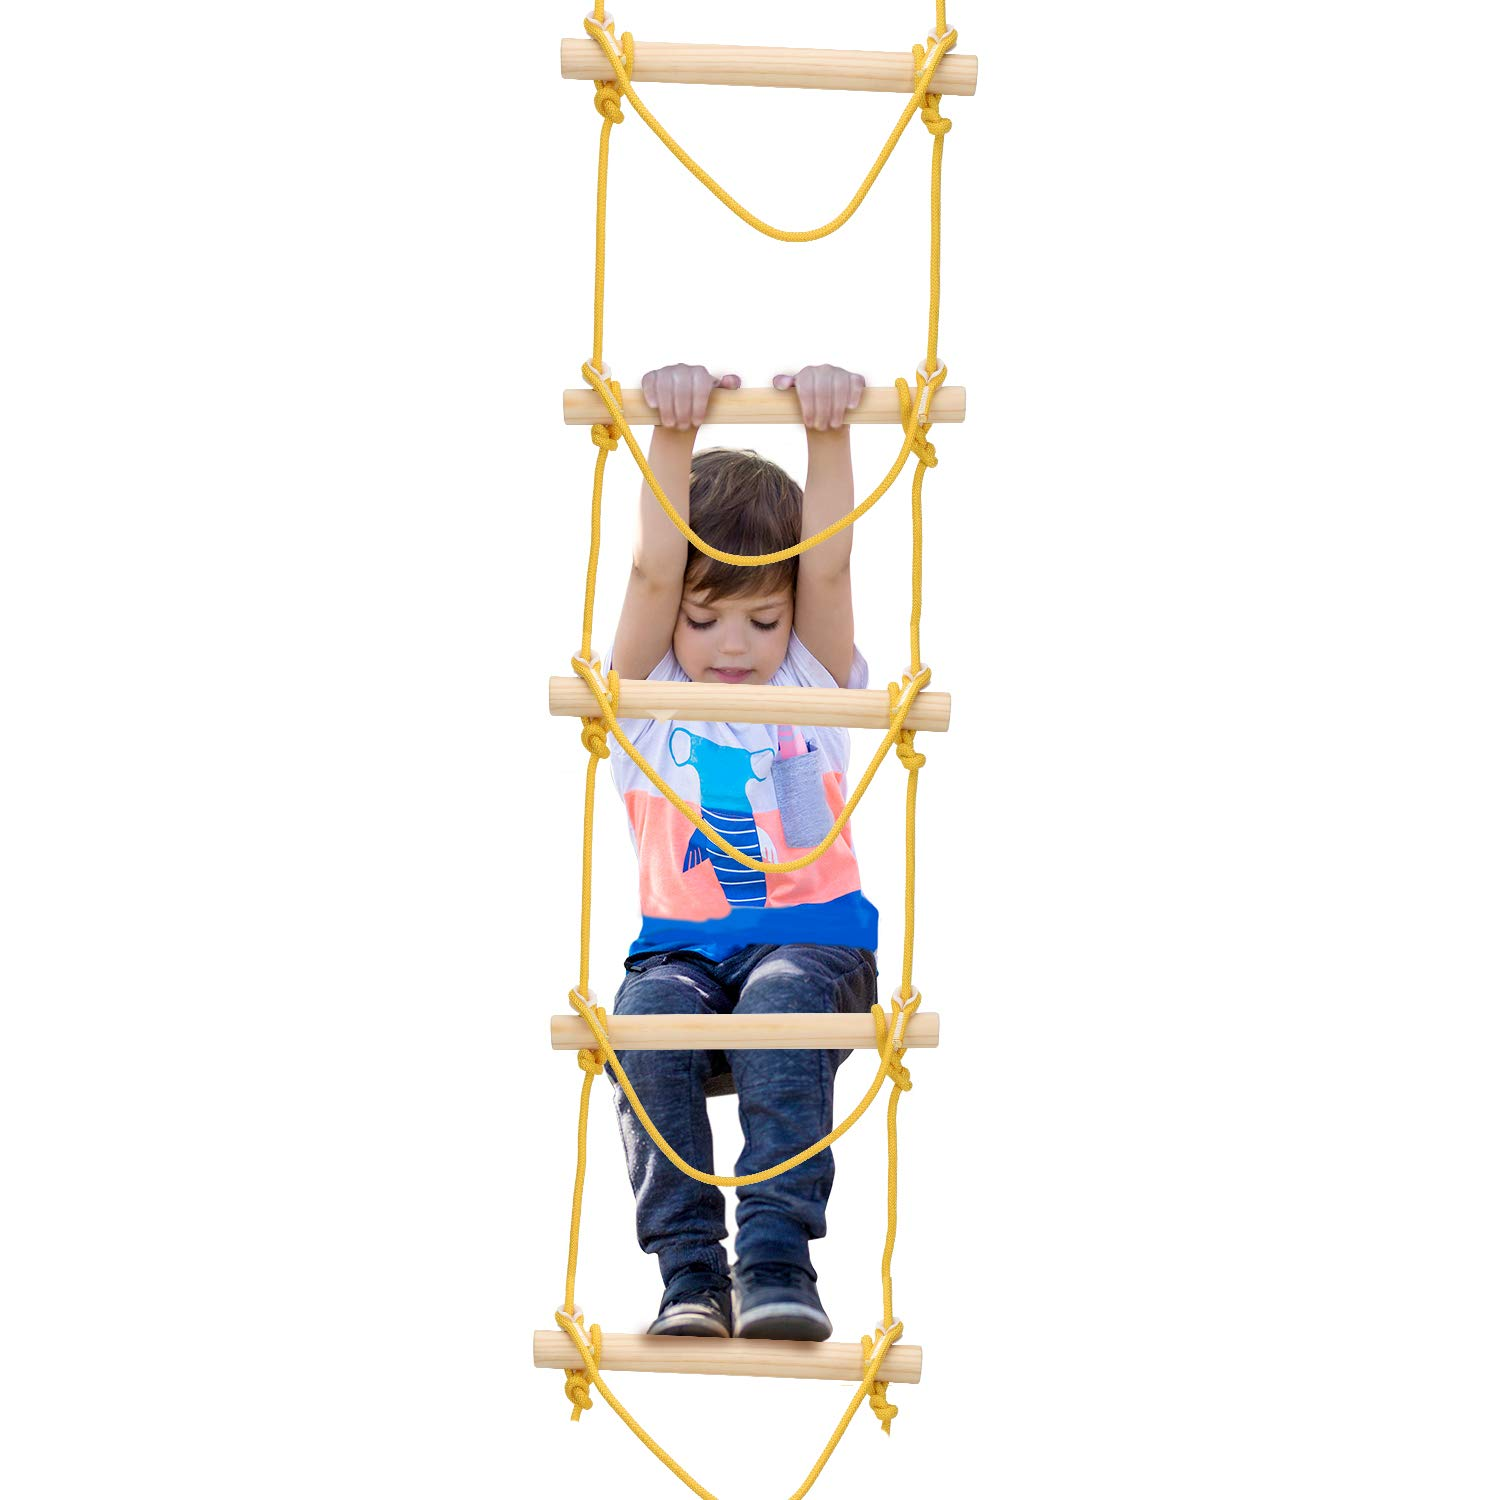 PACEARTH 5.2ft Climbing Rope Ladder for Kids Adults Playground Sturdy Wood Hanging Tree Ladder for Indoor Outdoor Swing Accessories, Tree House, Play Set, Climbing Game by PACEARTH